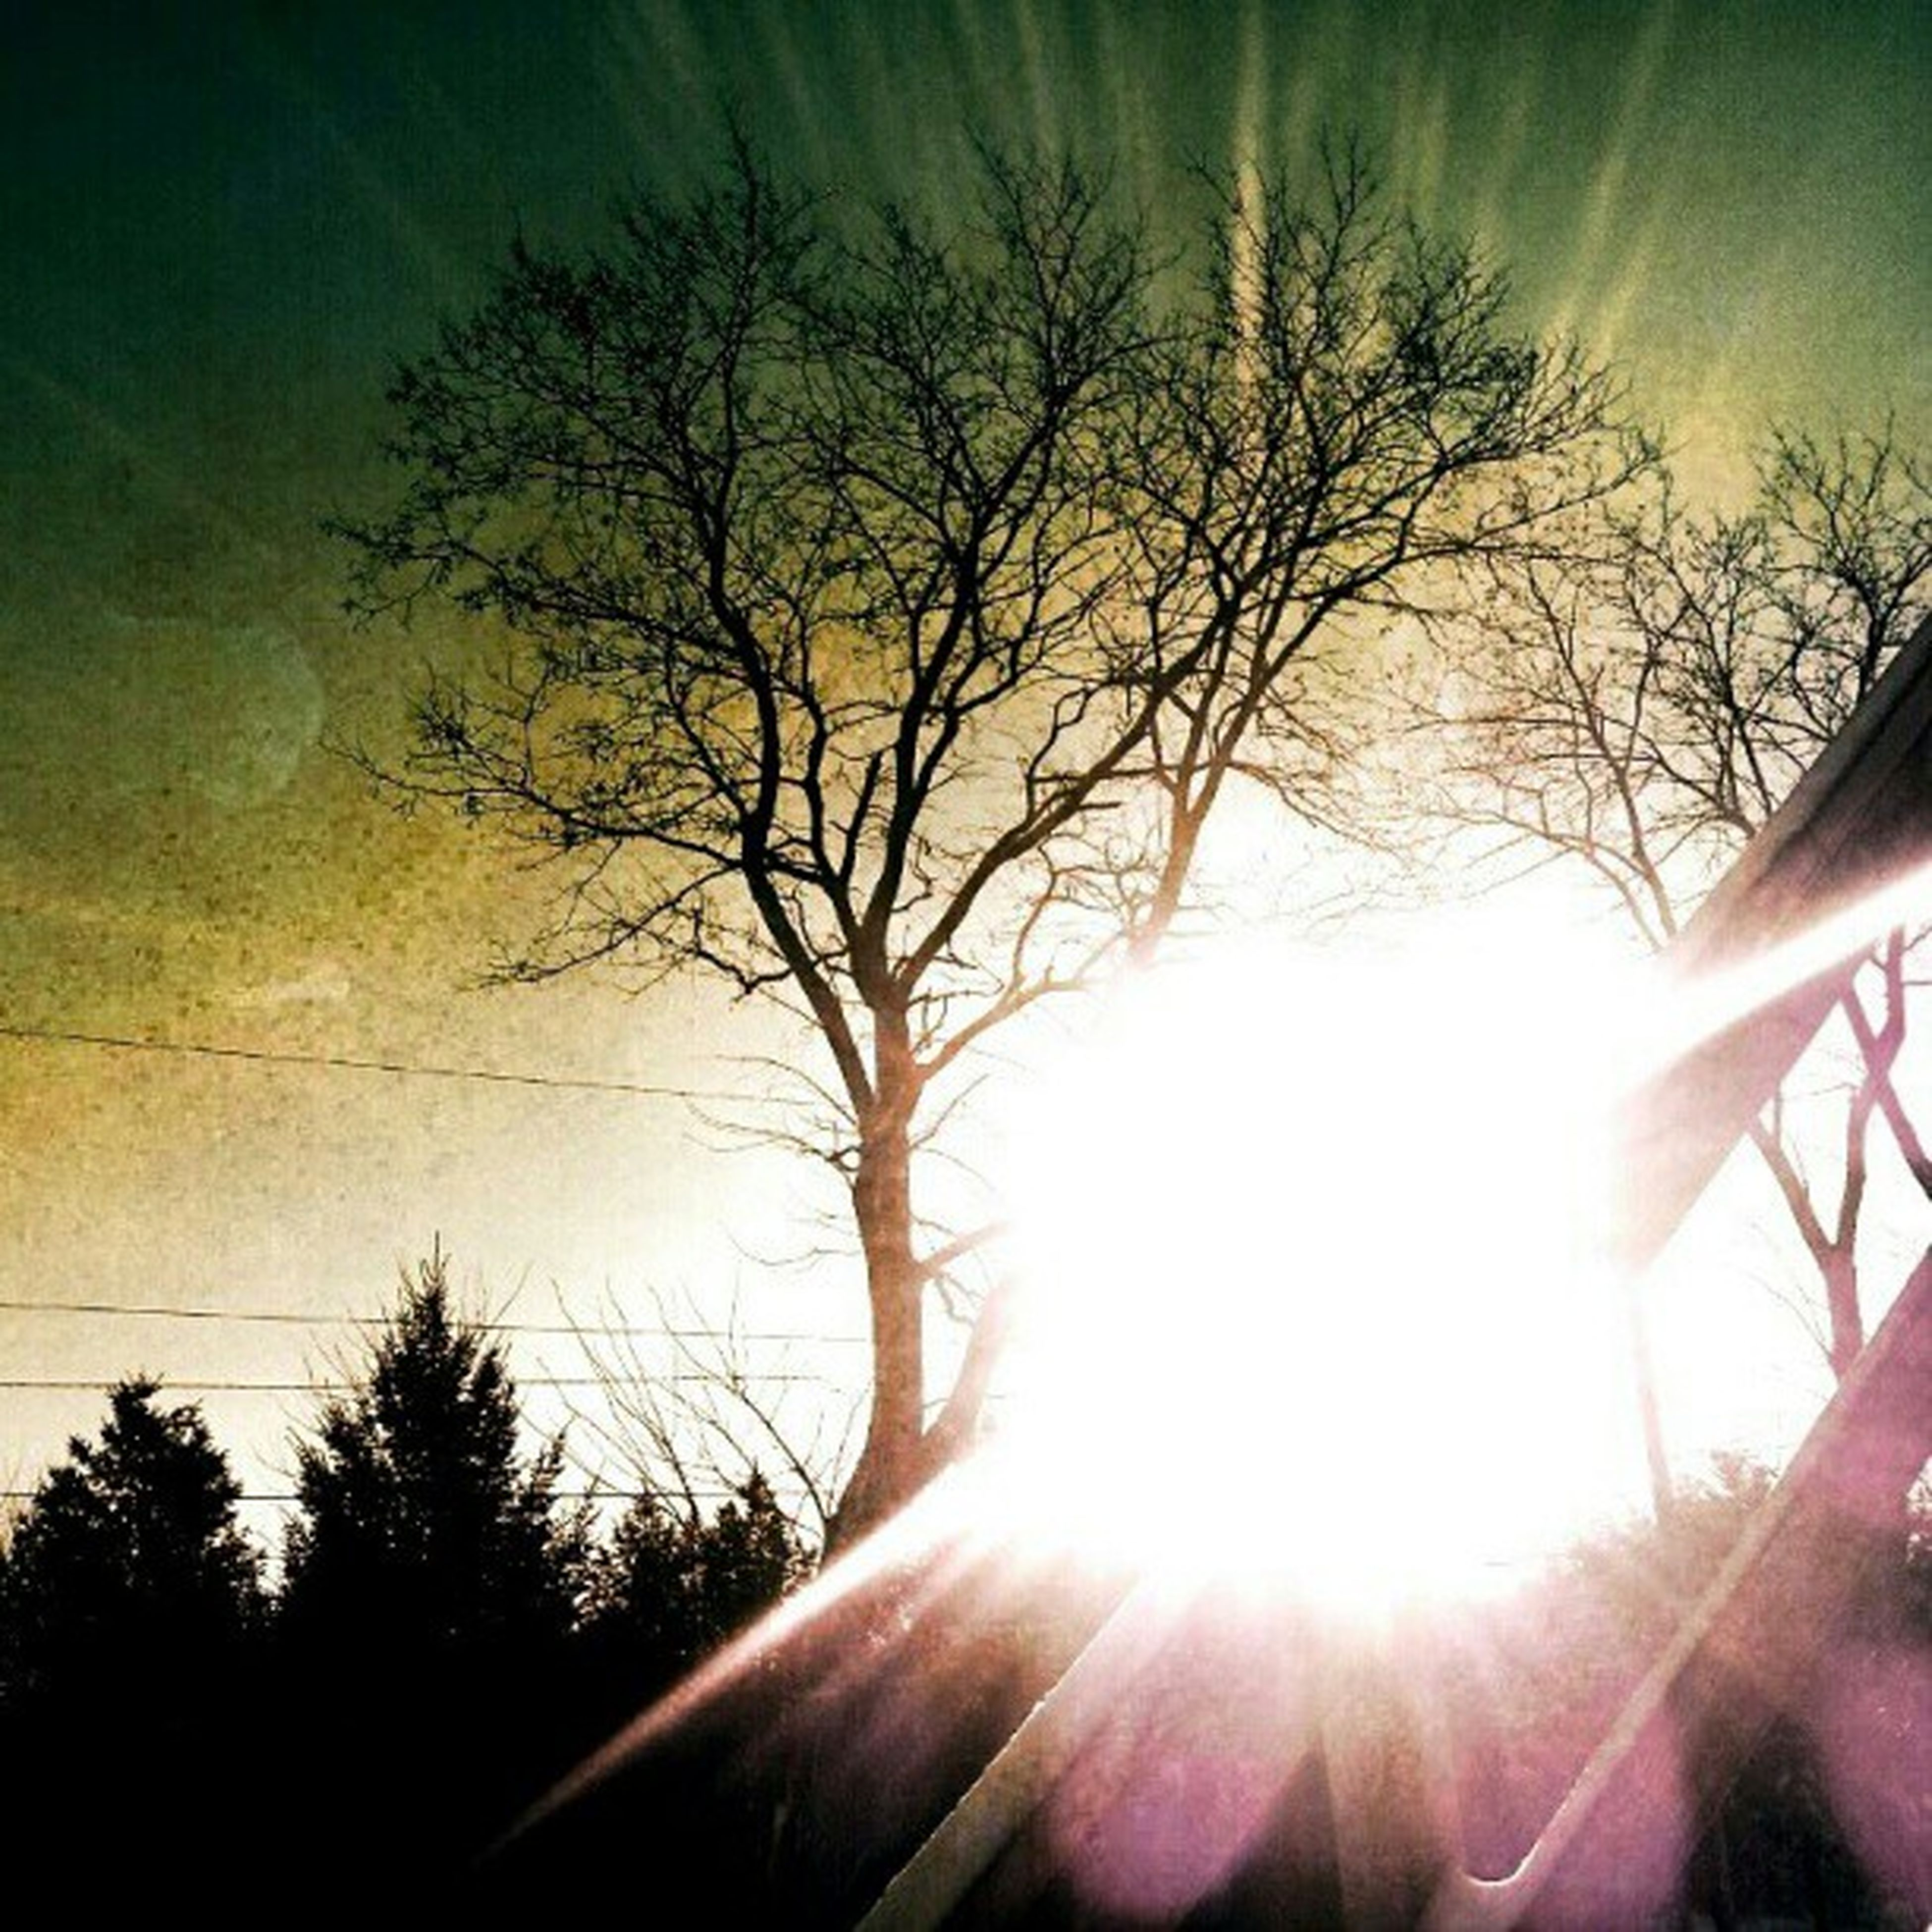 sun, tree, silhouette, sunbeam, sunlight, sunset, lens flare, sky, bare tree, branch, tranquility, nature, beauty in nature, tranquil scene, low angle view, scenics, back lit, bright, outdoors, growth